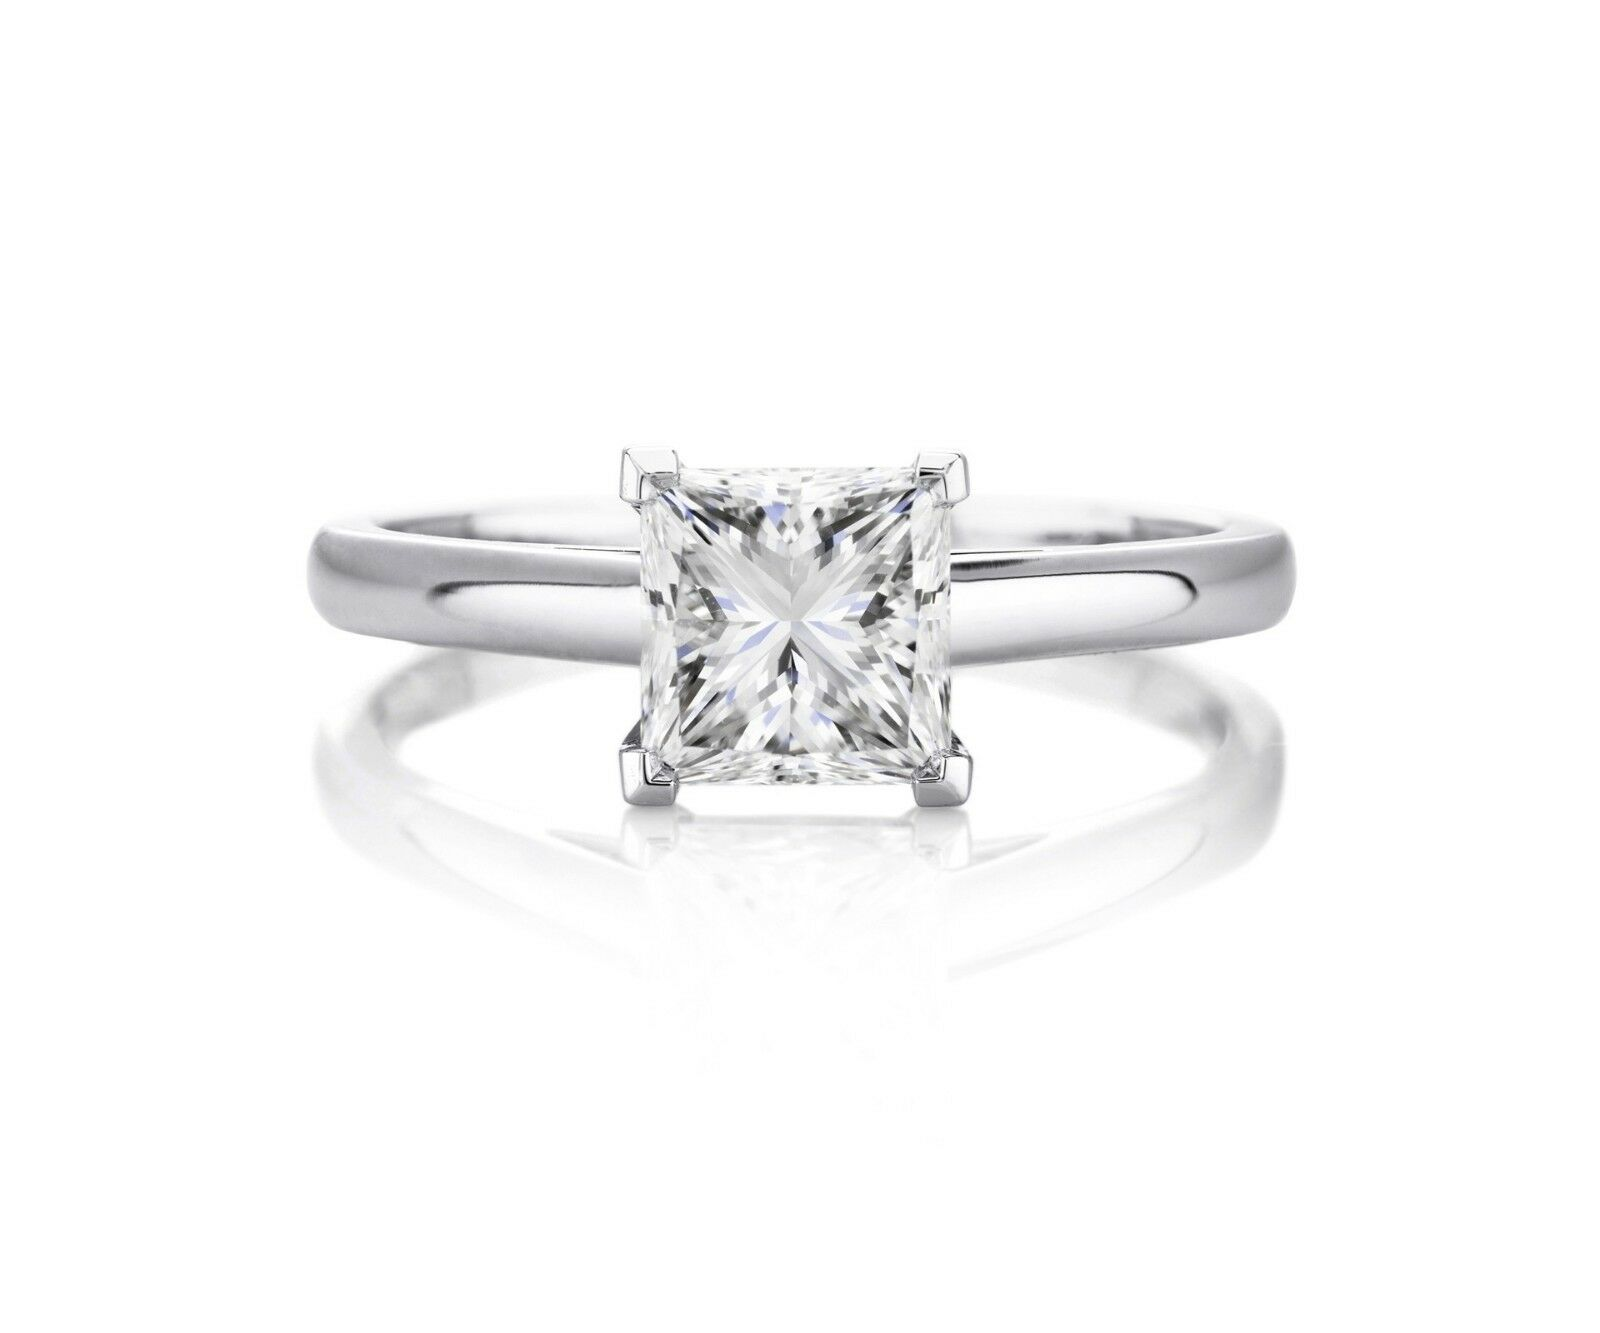 2.73 ct. H SI2 PRINCESS CUT DIAMOND GIA SOLITAIRE ENGAGEMENT RING 14K WHITE GOLD